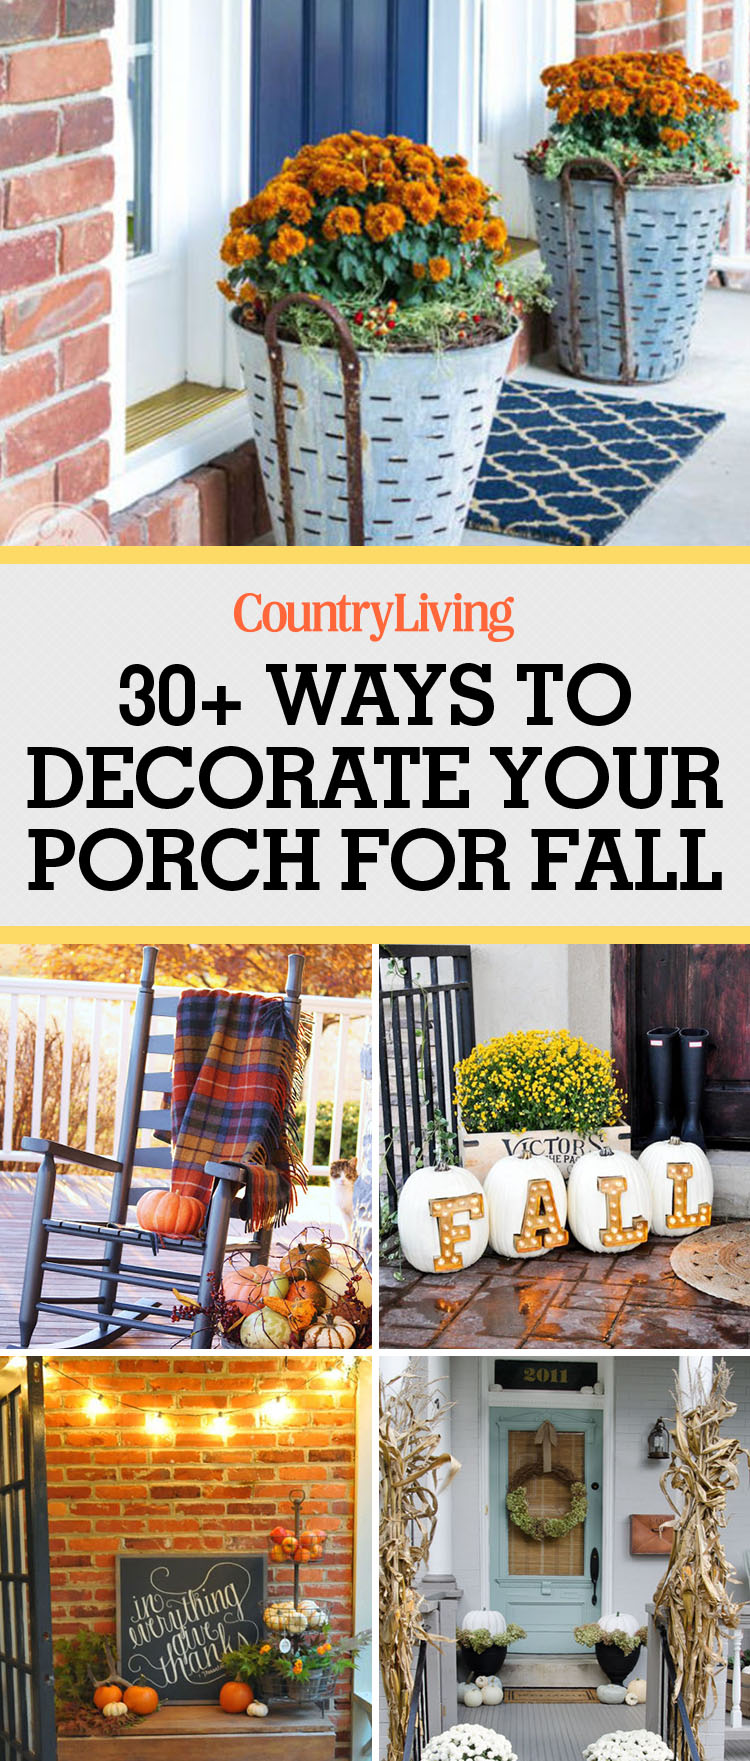 37 Fall Porch Decorating Ideas Ways To Decorate Your